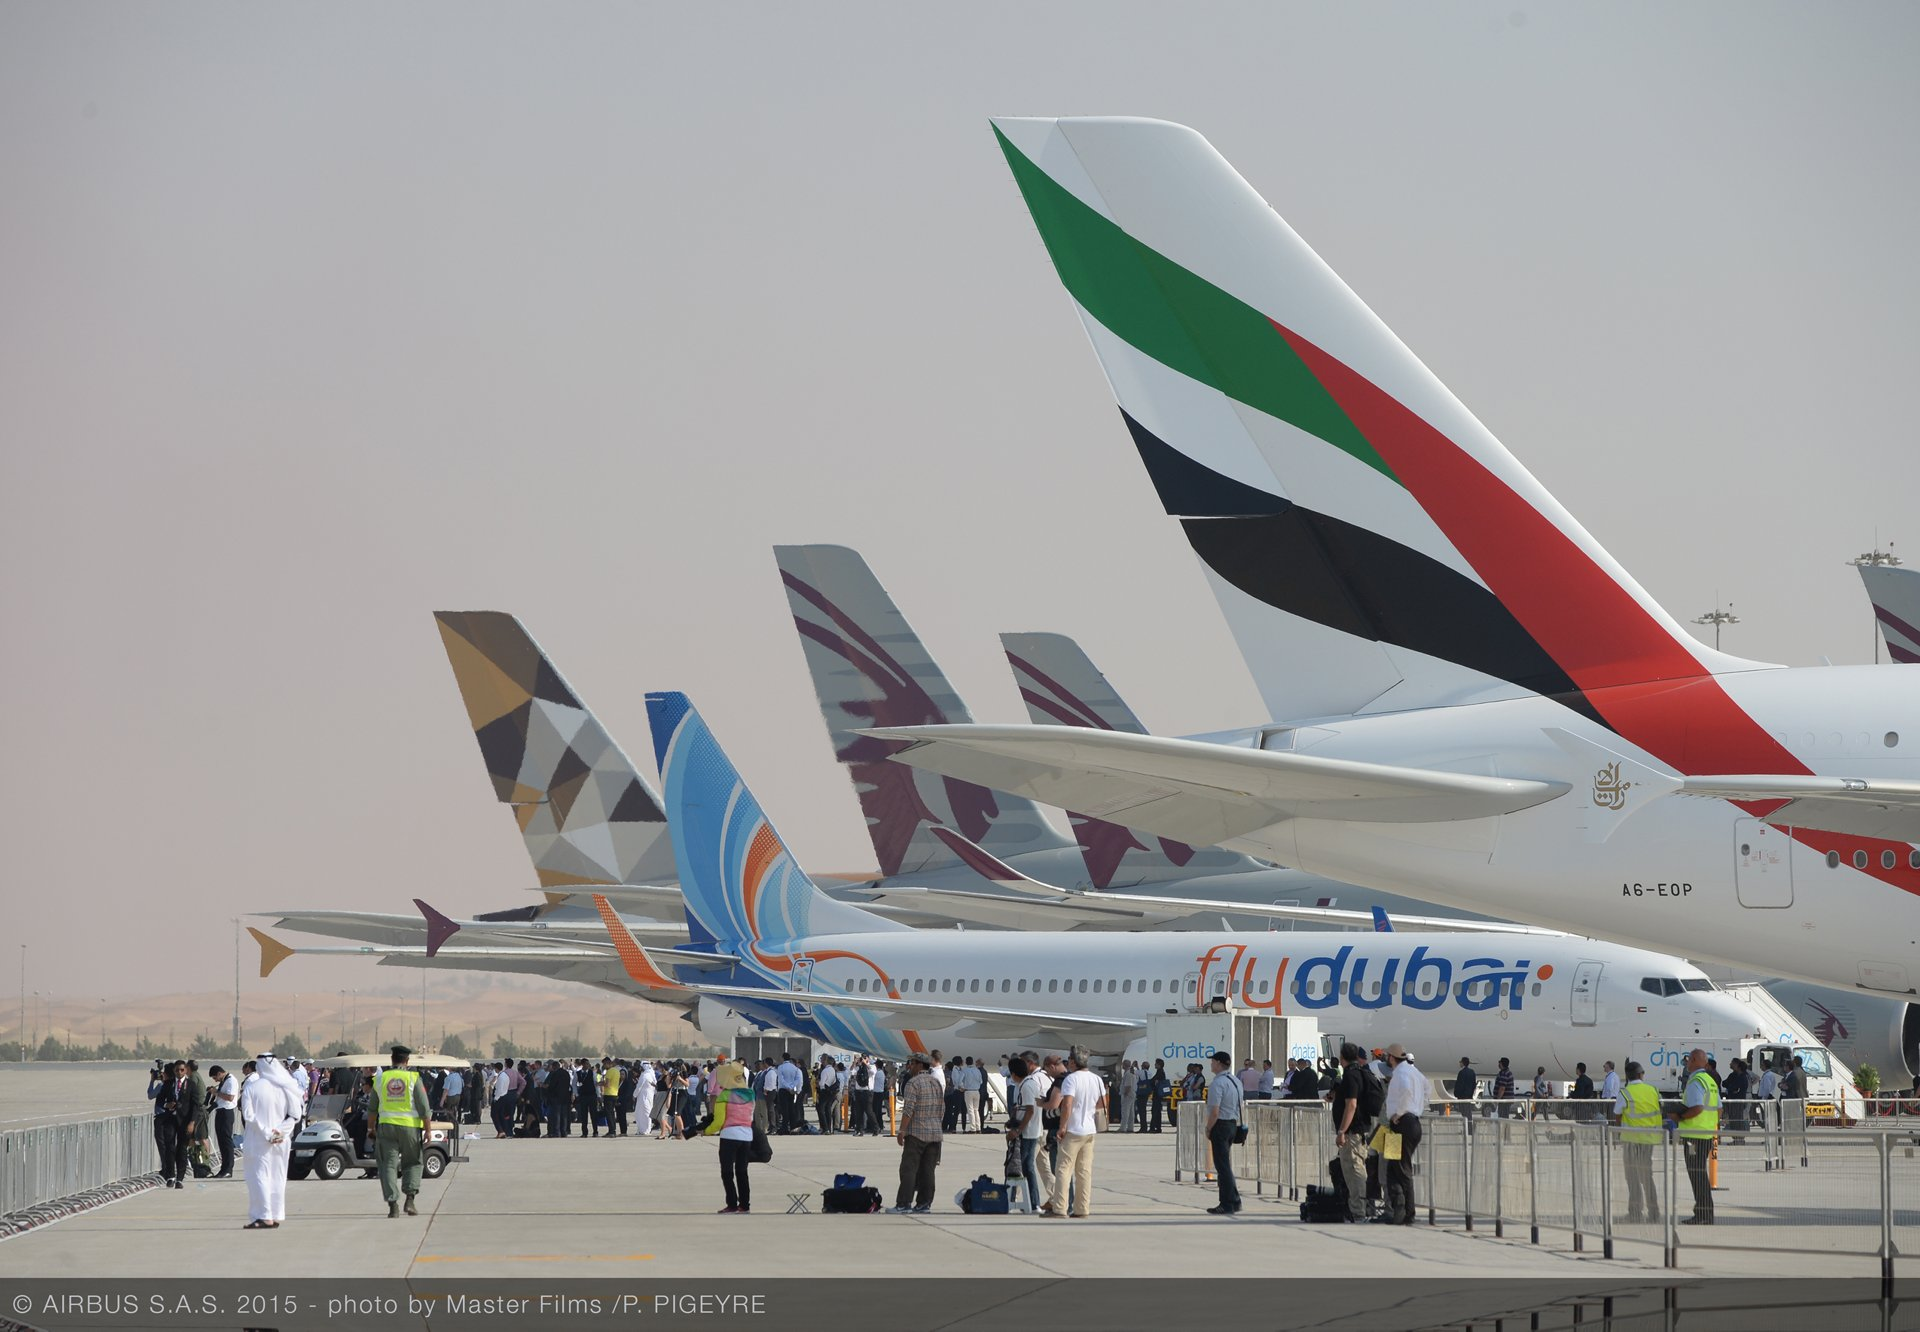 Airbus jetliners drew a steady crowd of visitors on display during the 2015 Dubai Airshow's second day